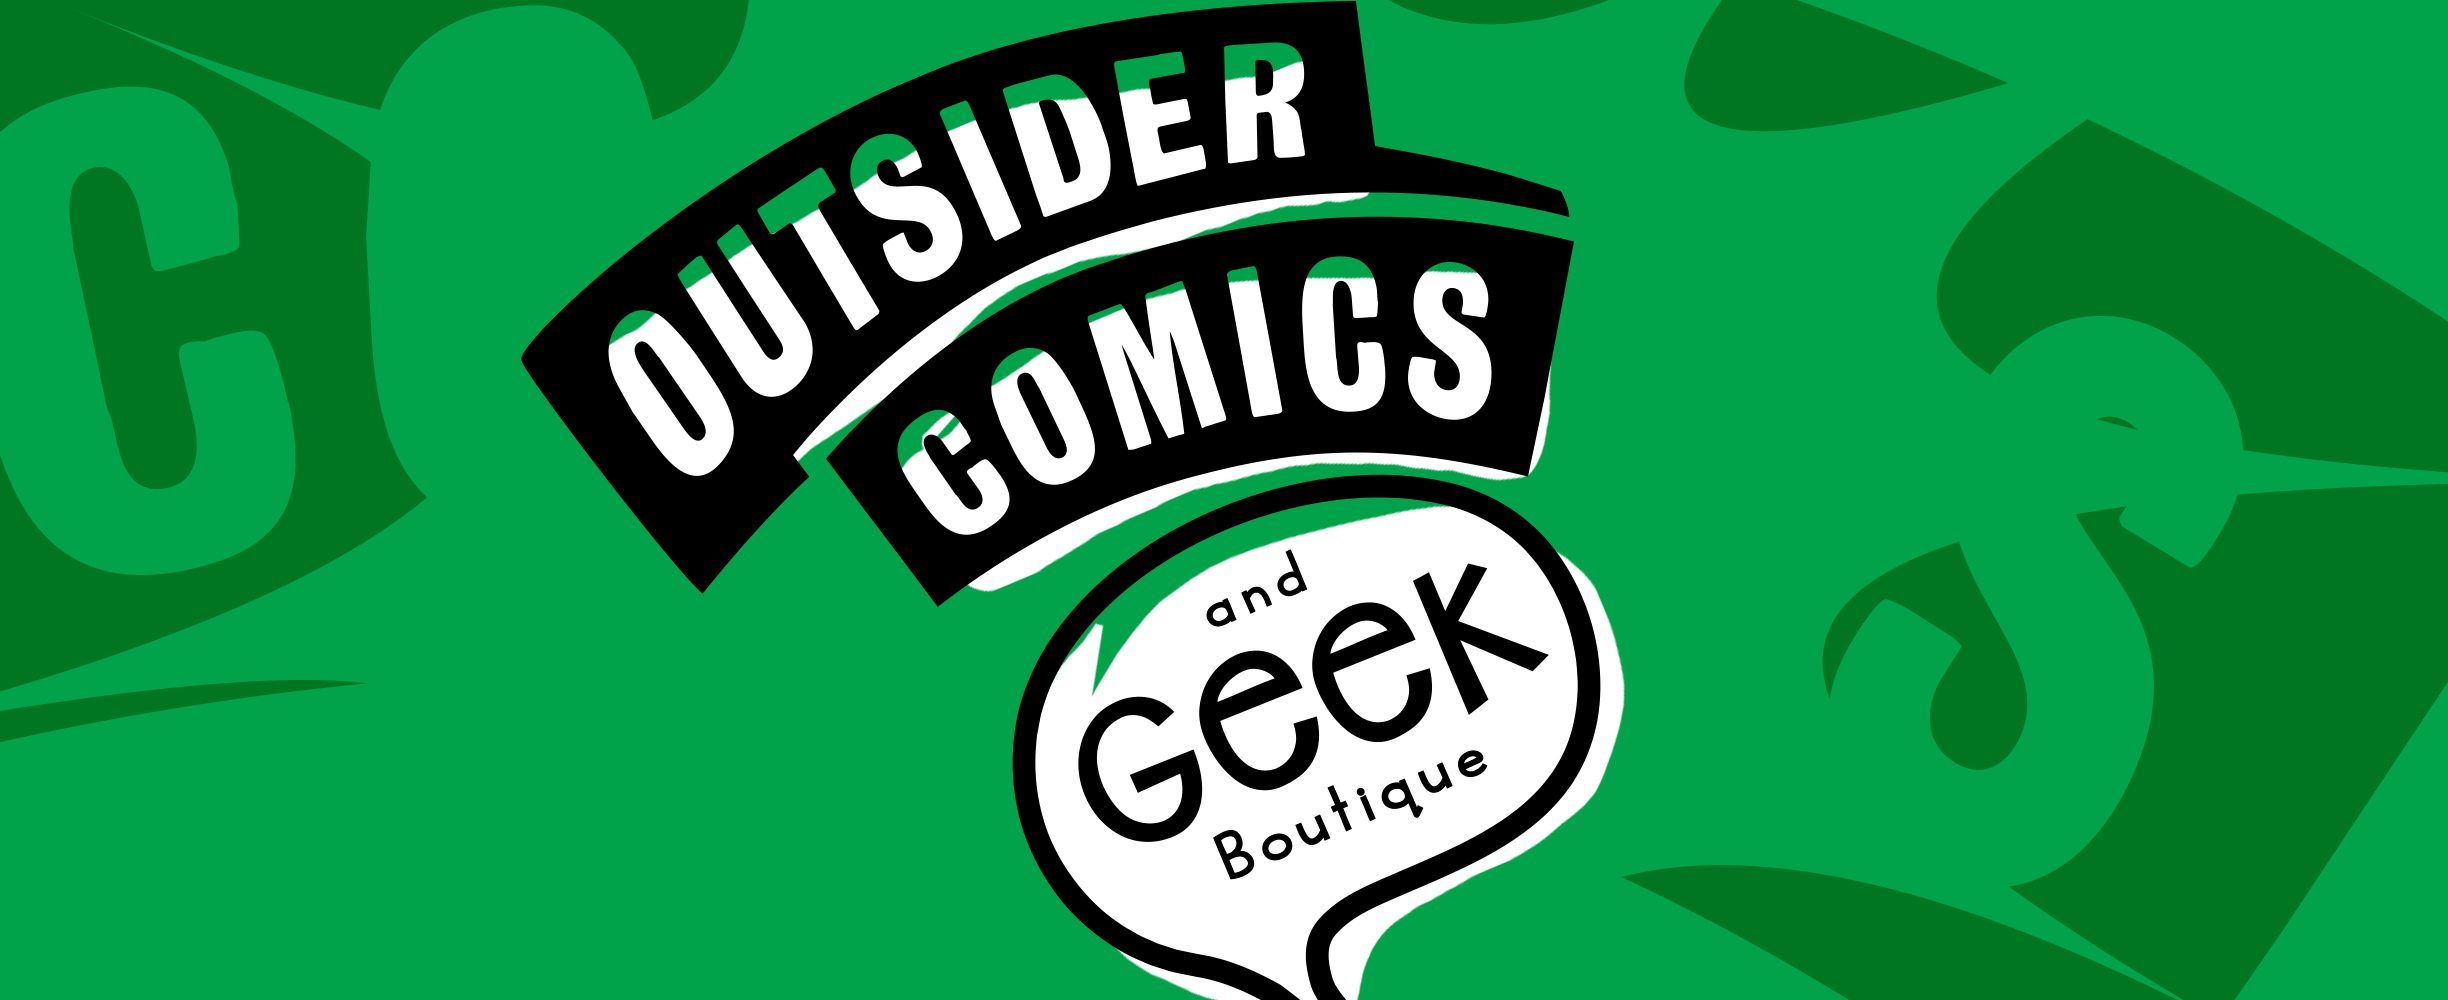 Outsider Comics & Geek Boutique